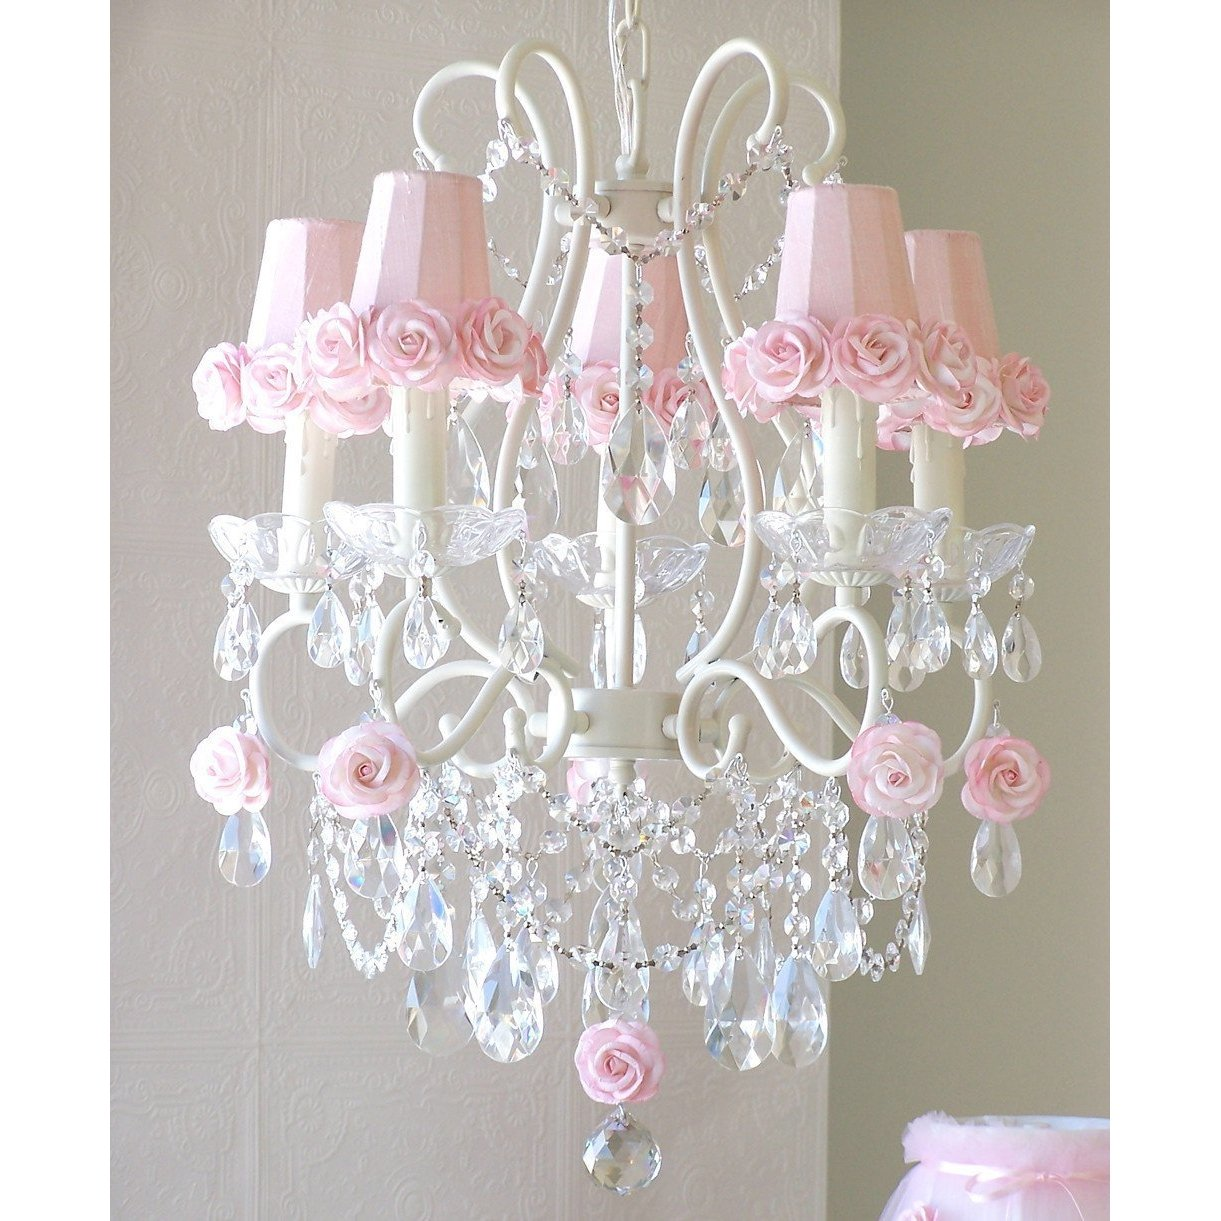 5-Light Antique White Chandelier with Pink Rose Shades-Chandeliers-Chandelier Only-Jack and Jill Boutique